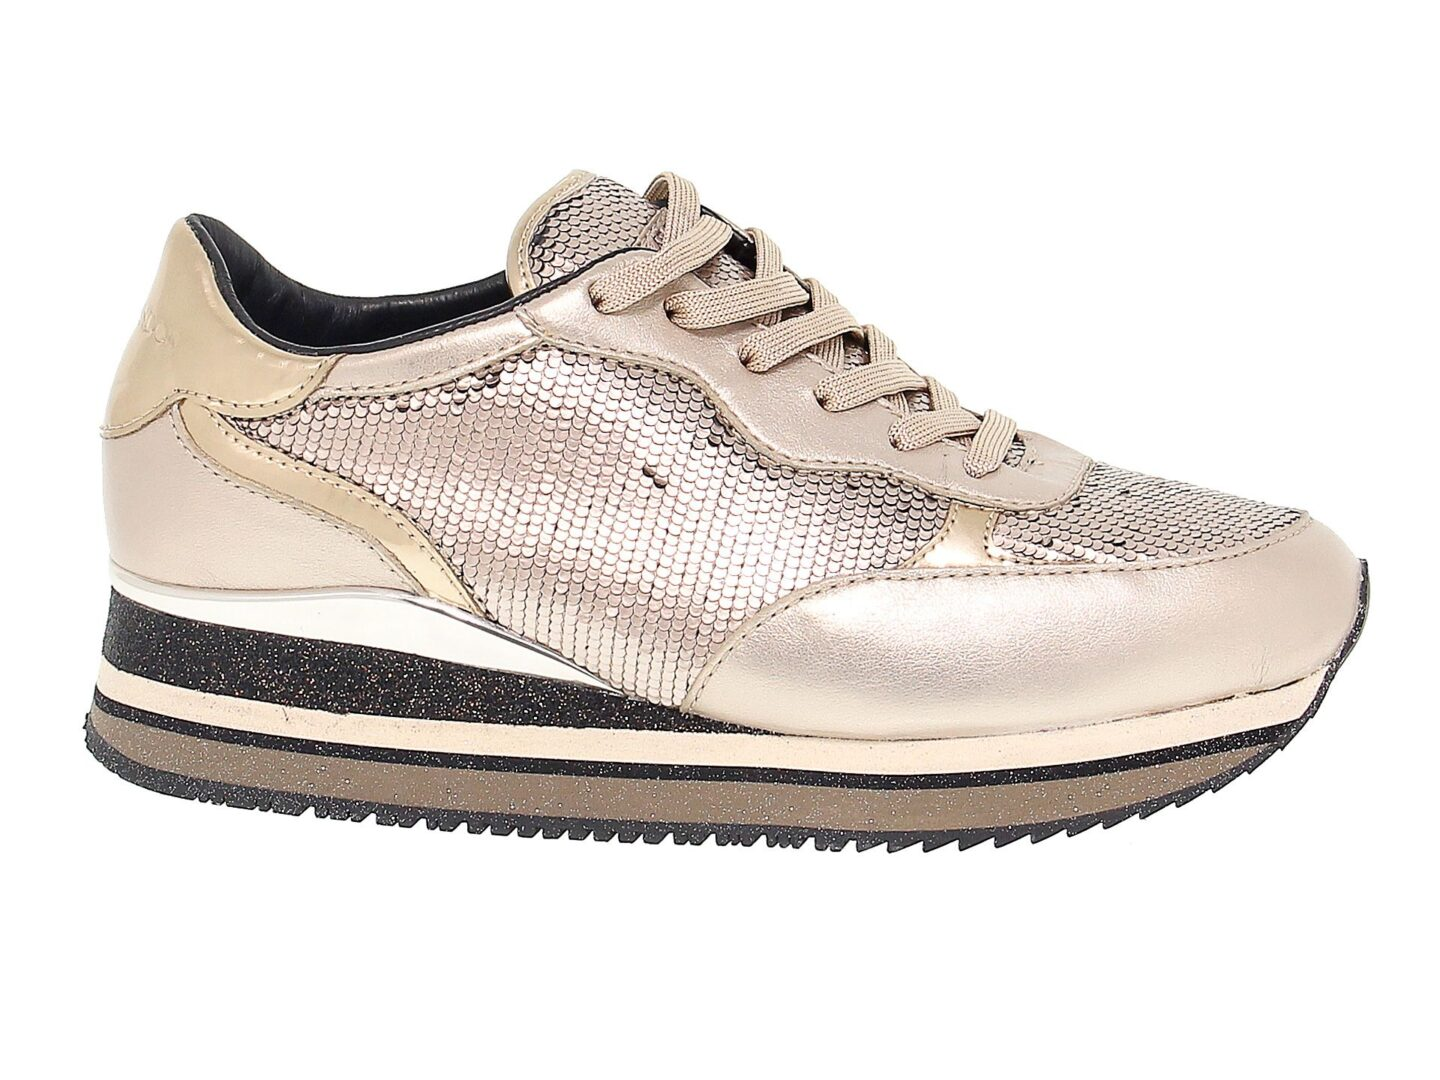 CRIME LONDON WOMEN'S 25520 GOLD POLYESTER SNEAKERS